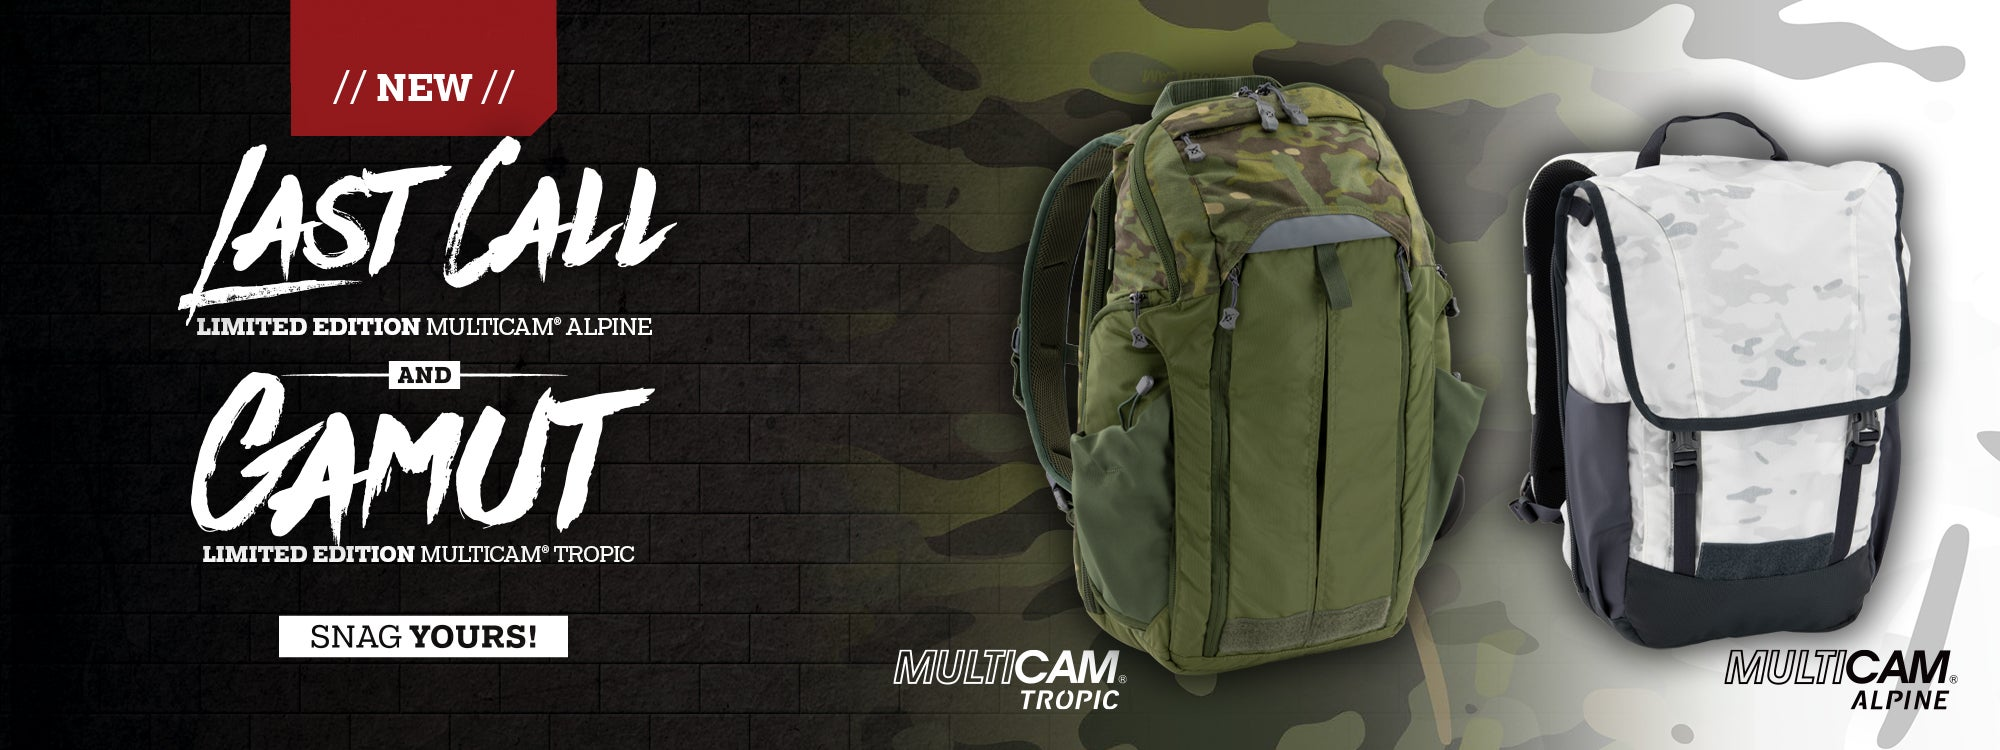 Multicam Bags and Packs